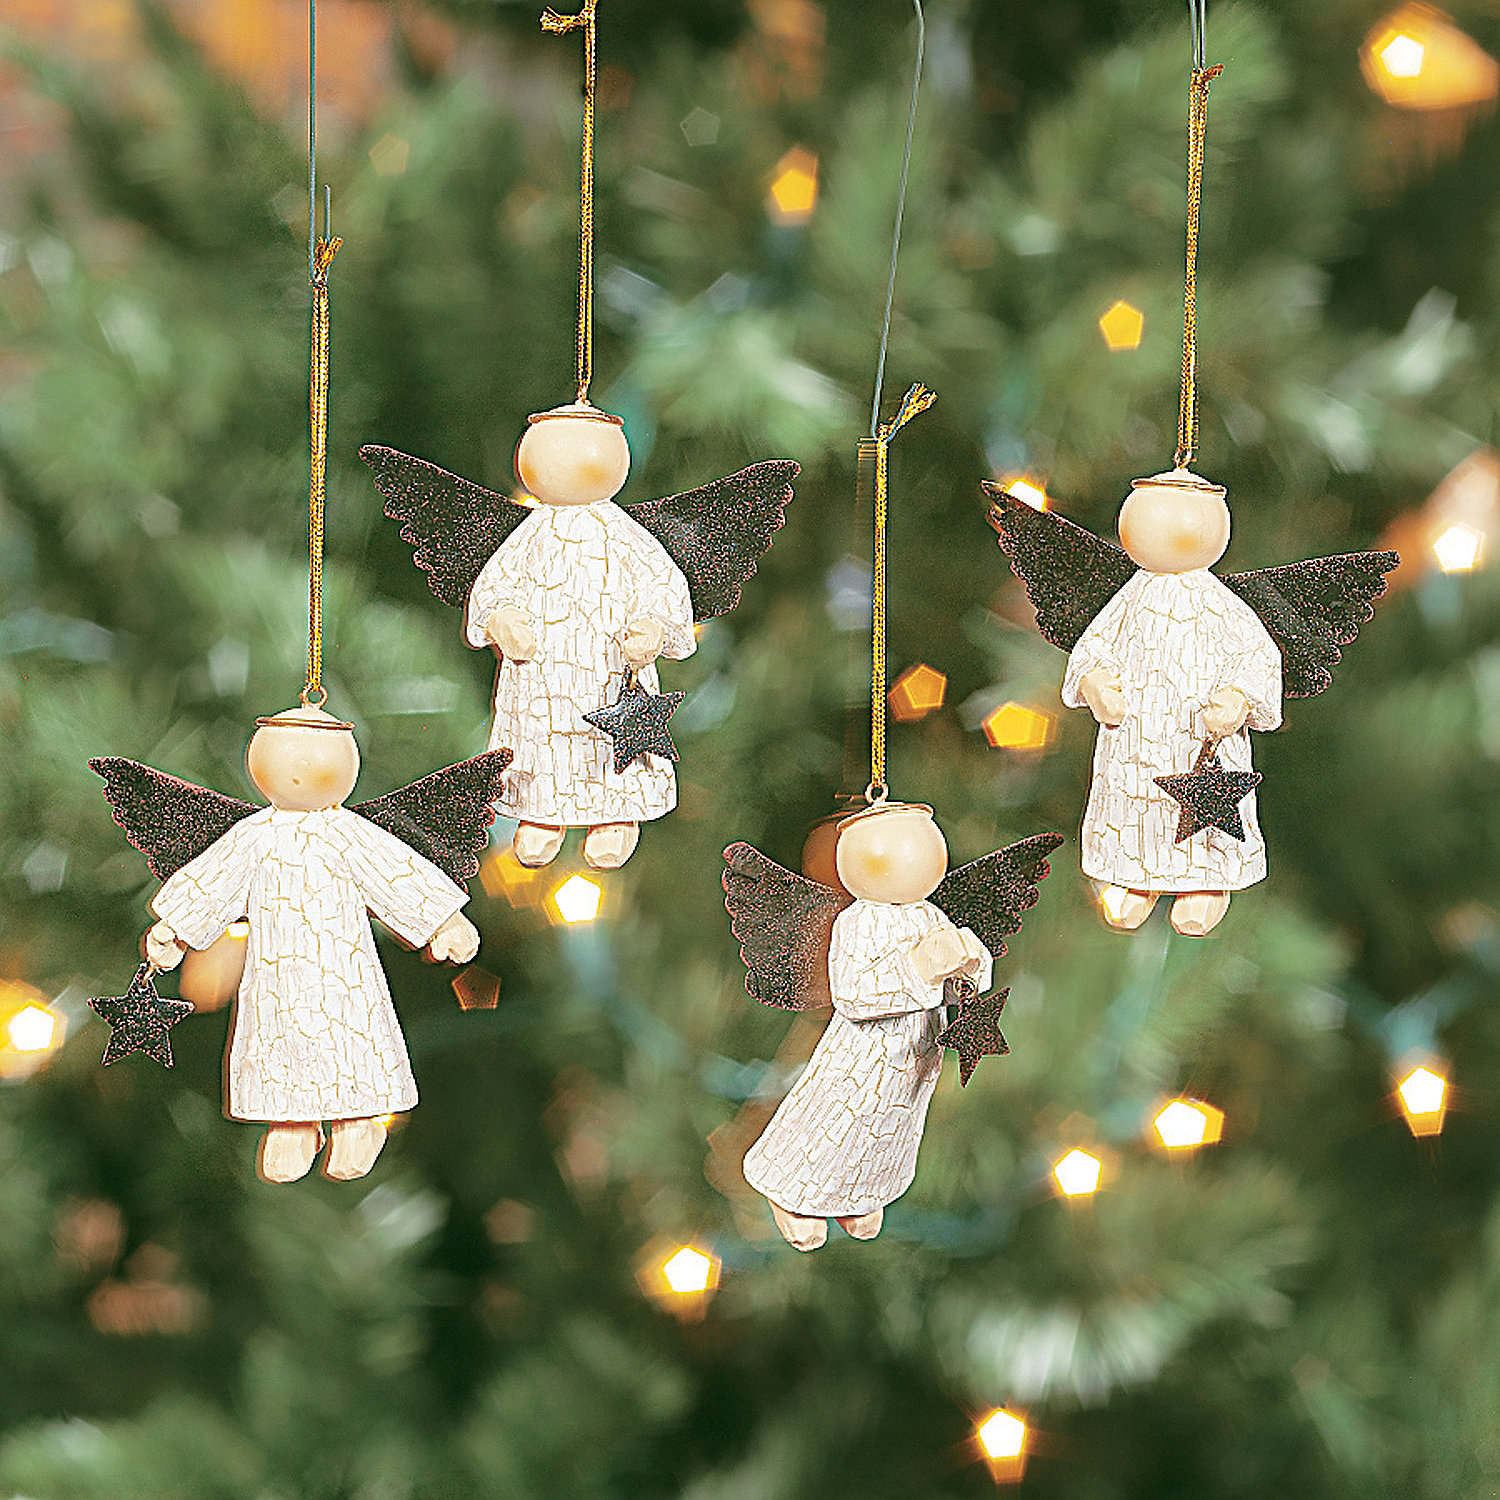 Cool Christmas Tree Decorations: Star-Gathering Angel Ornaments